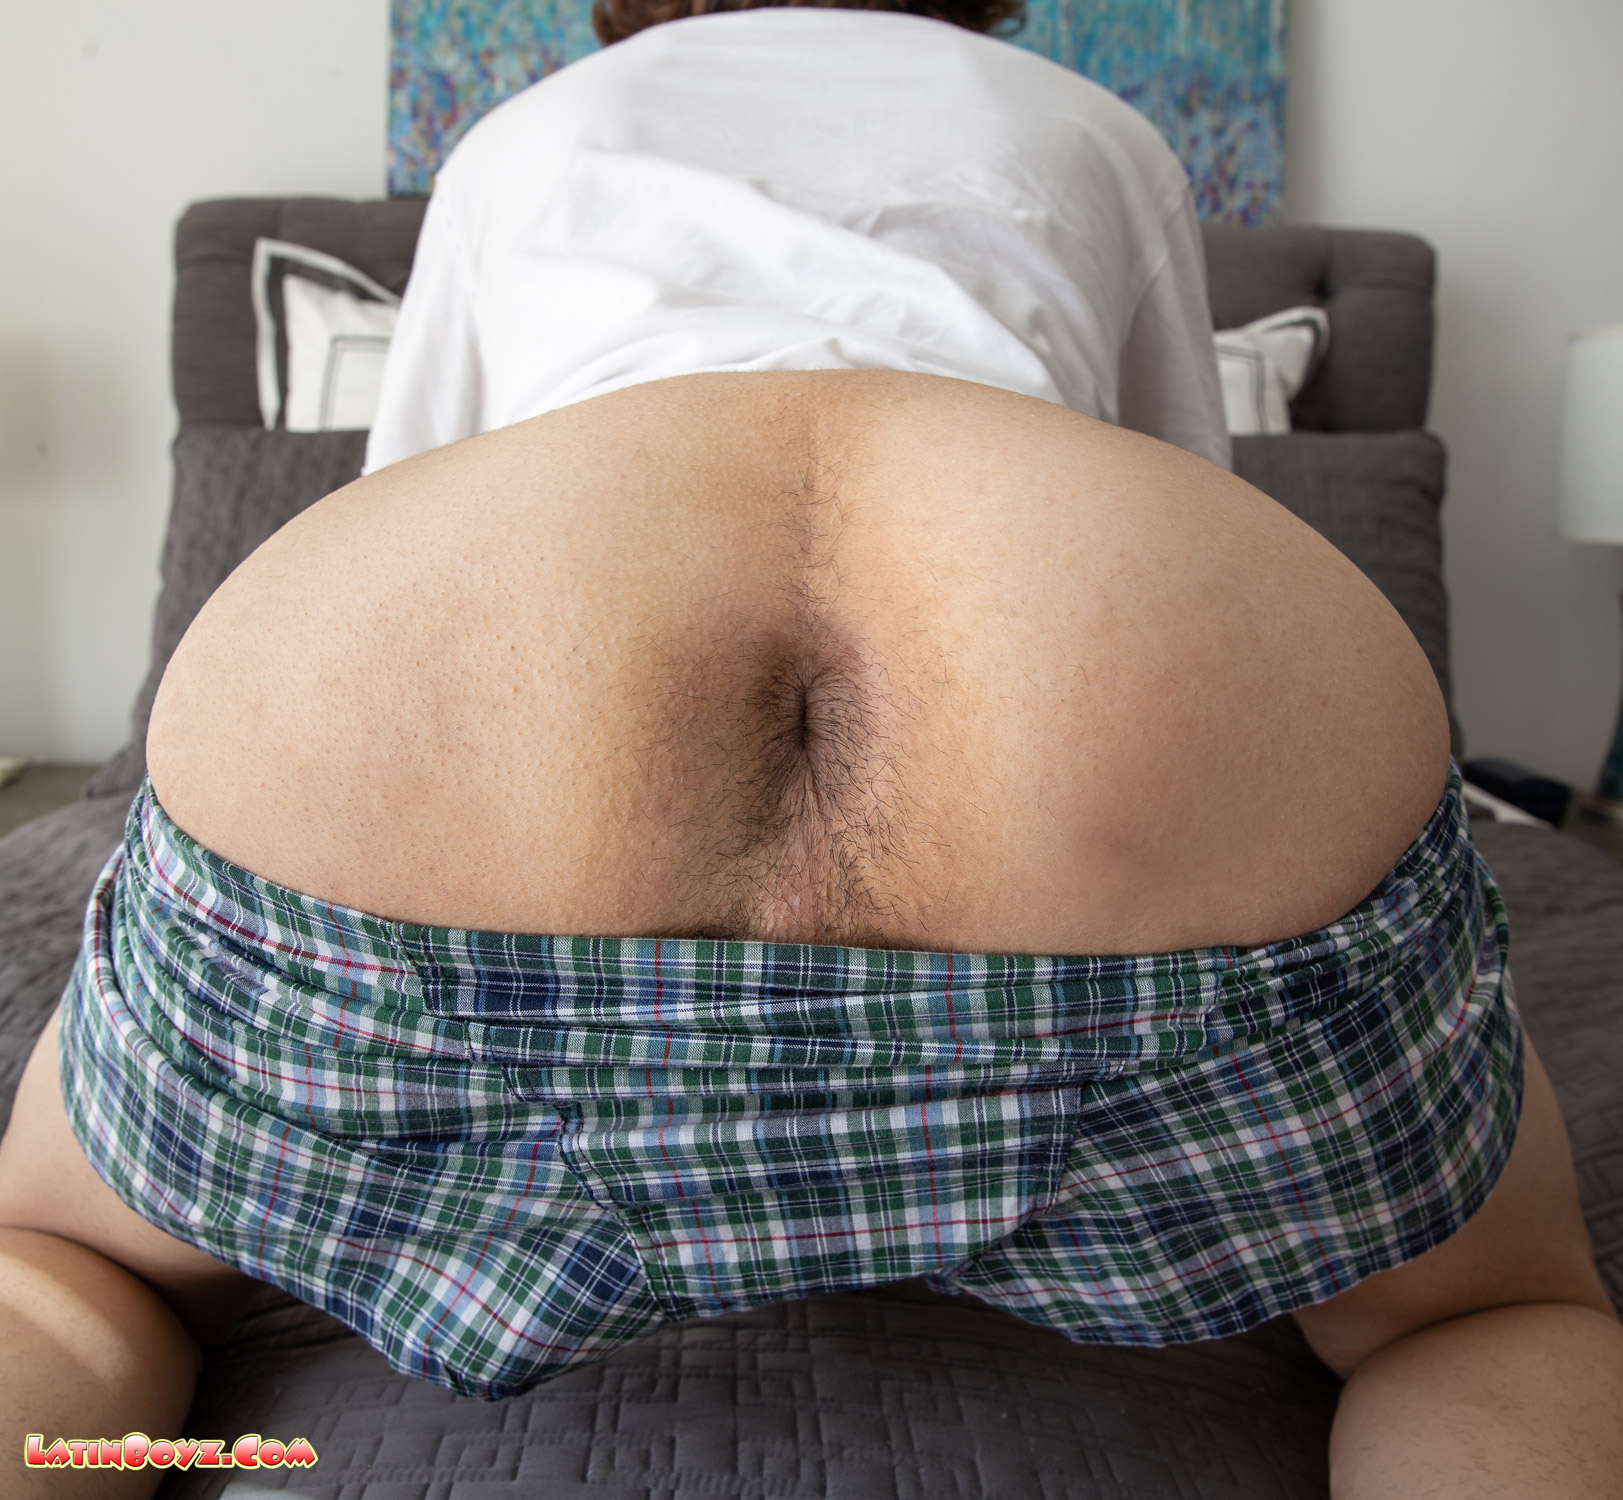 Photo of Tavi's Latino twink ass